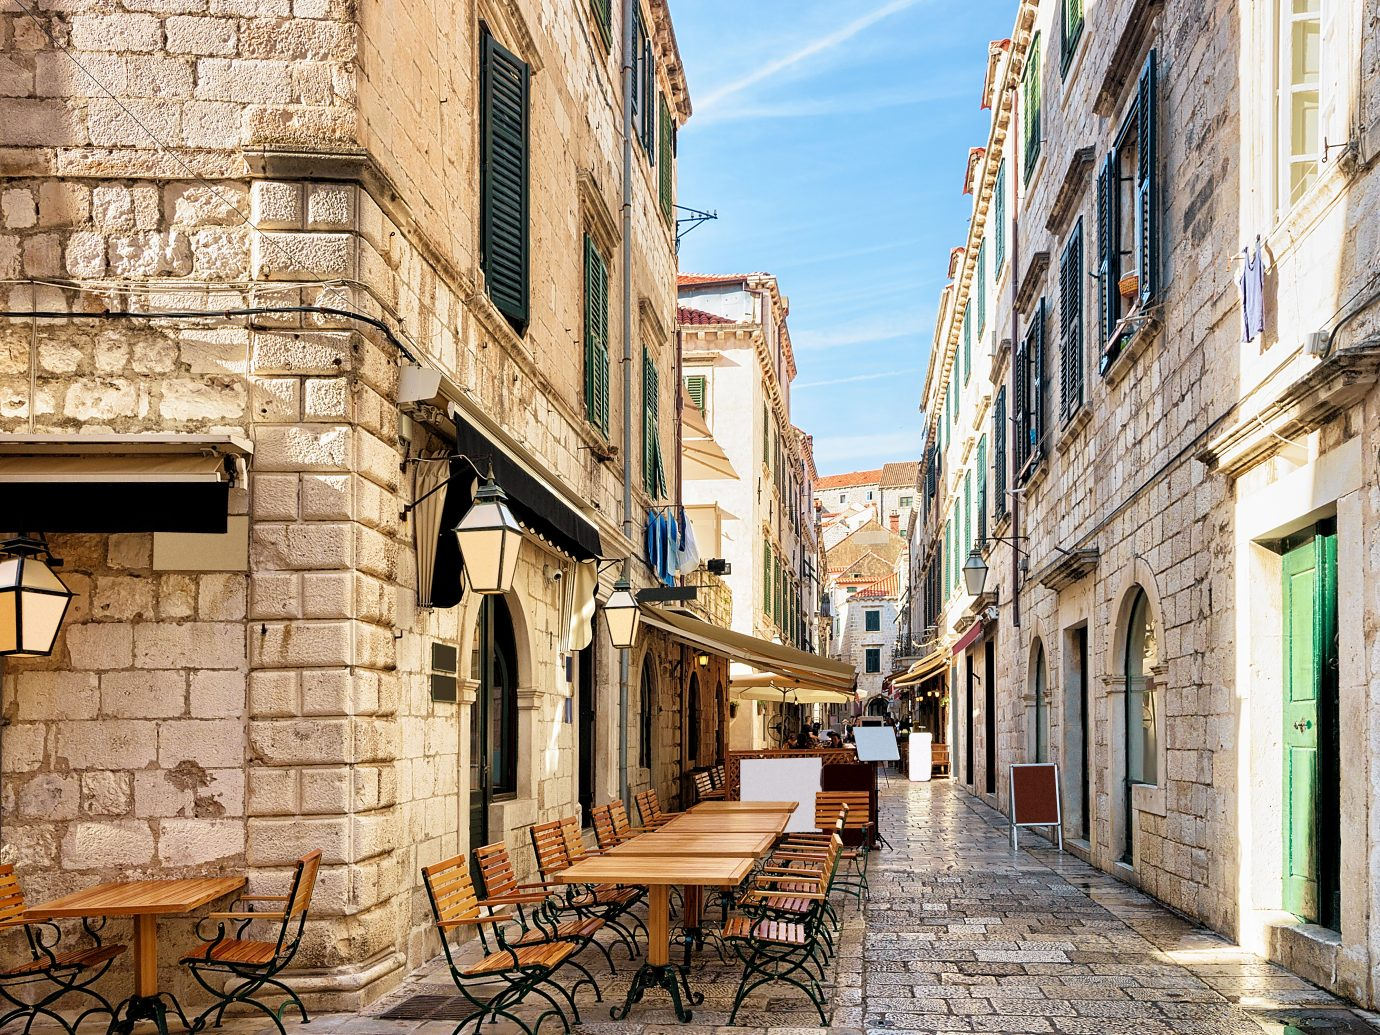 Open Street terrace restaurant in the Old town of Dubrovnik, Croatia